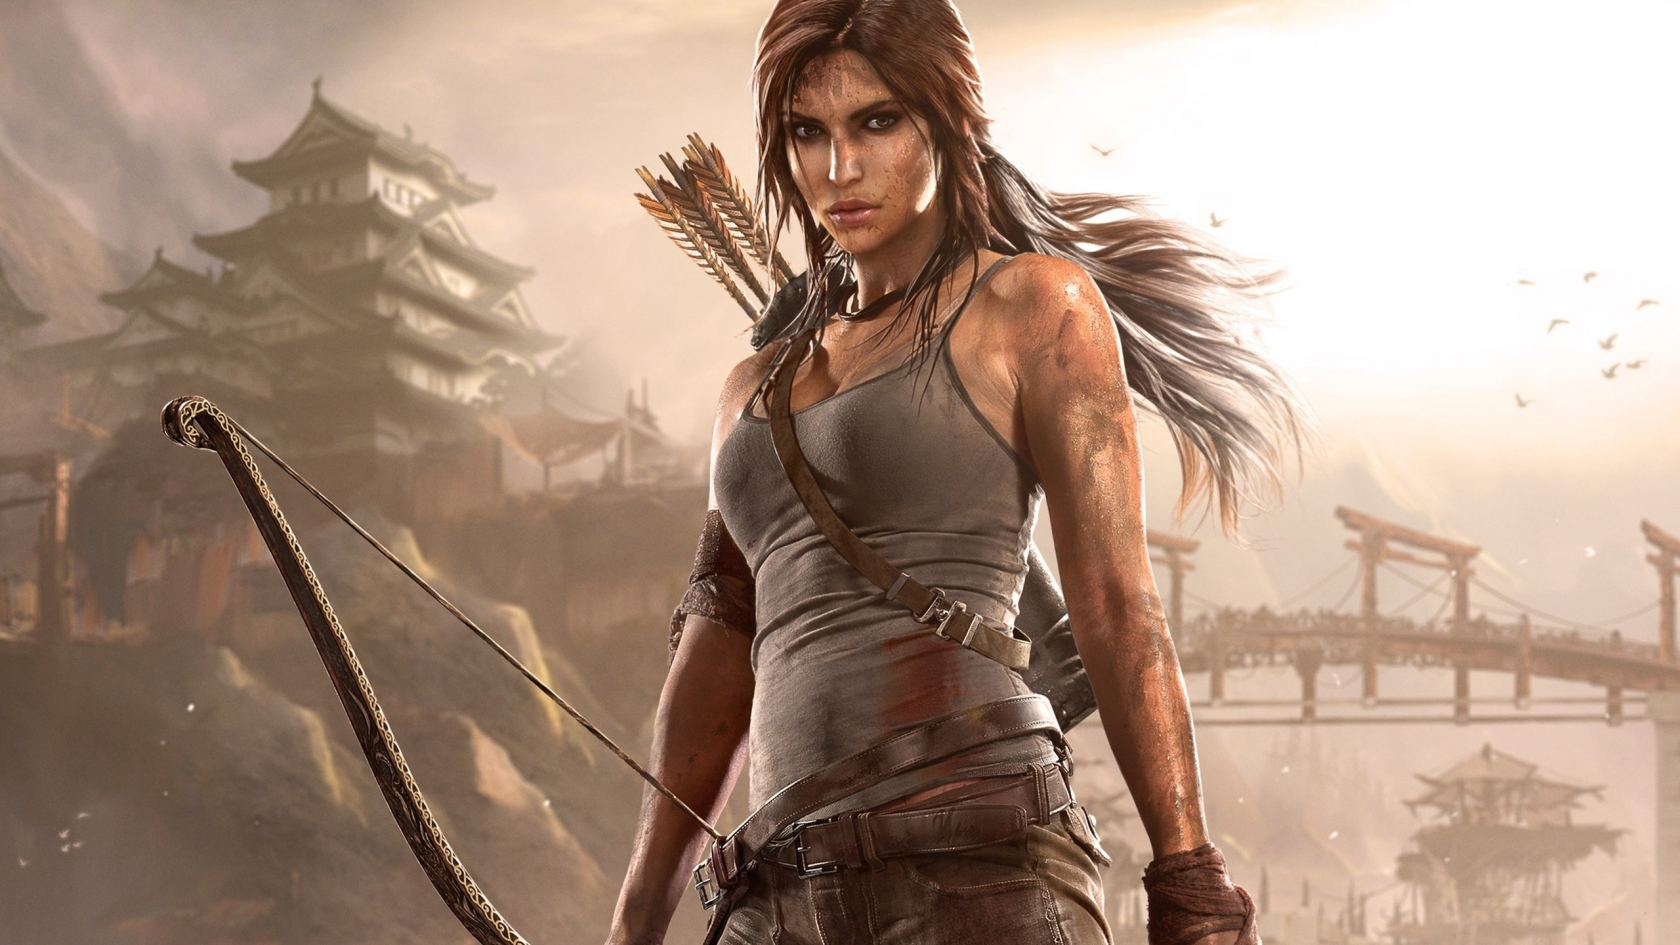 Rise of the Tomb Raider Lara Croft for 1680 x 945 HDTV resolution